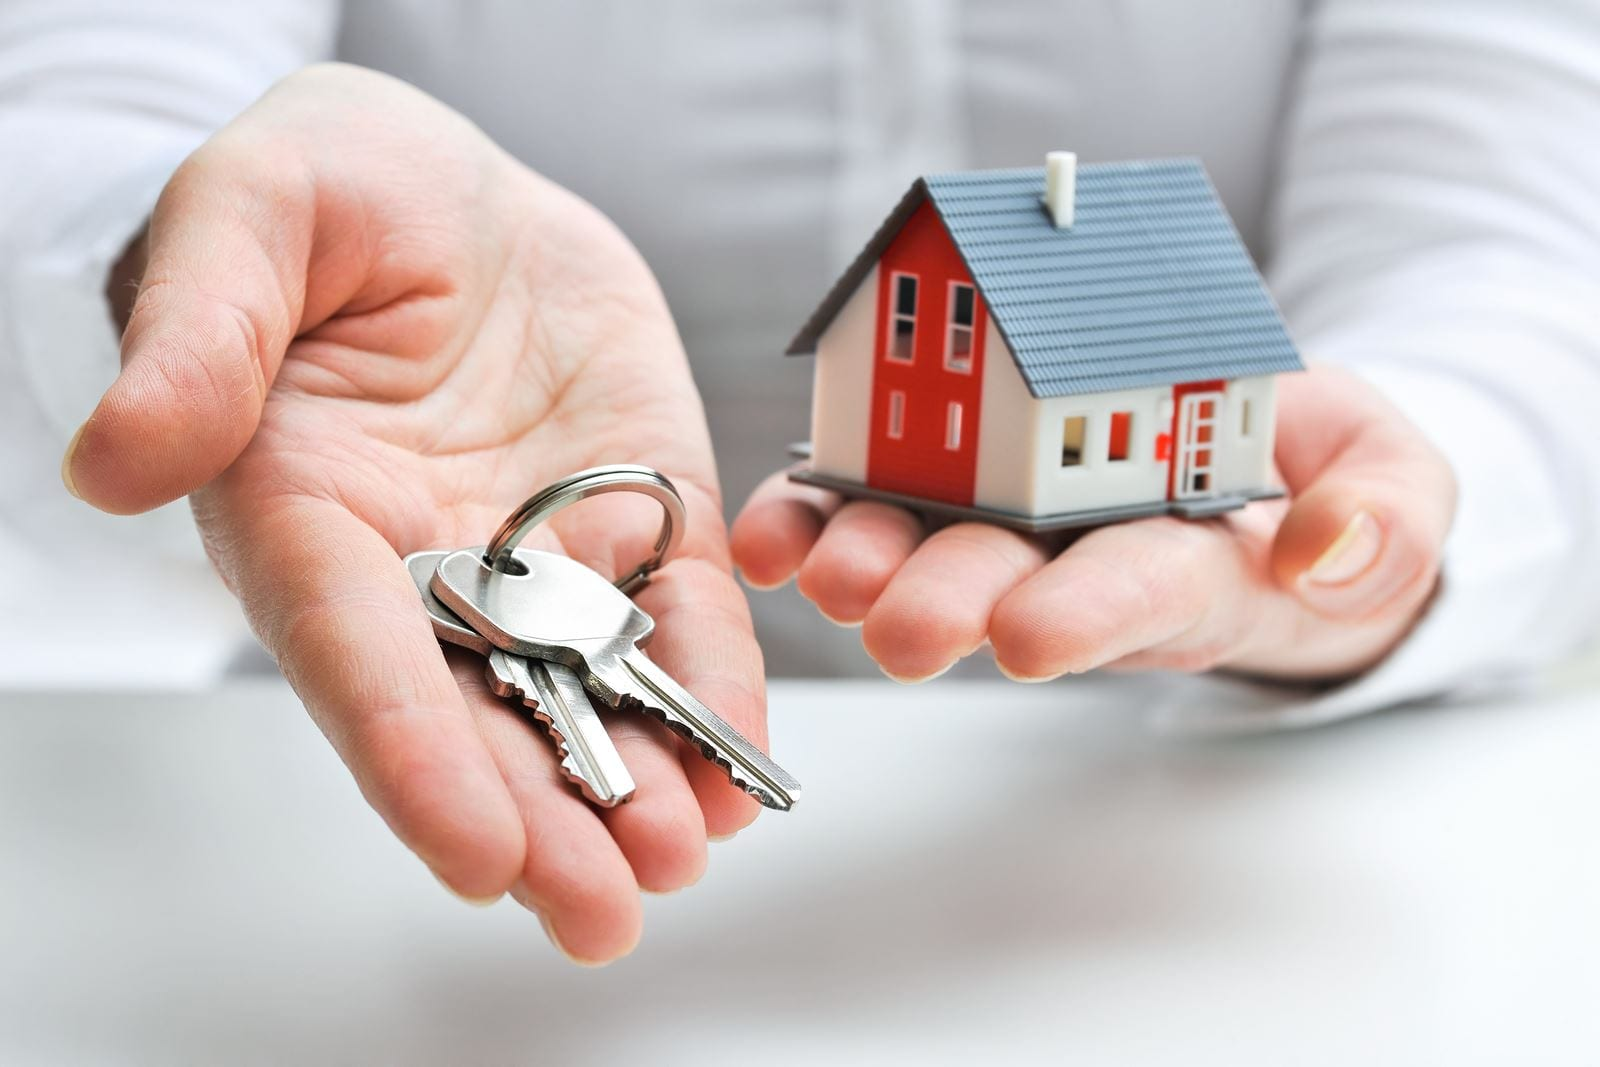 How-to-Buy-a-House-Without-a-Realtor-as-a-First-Time-Investor